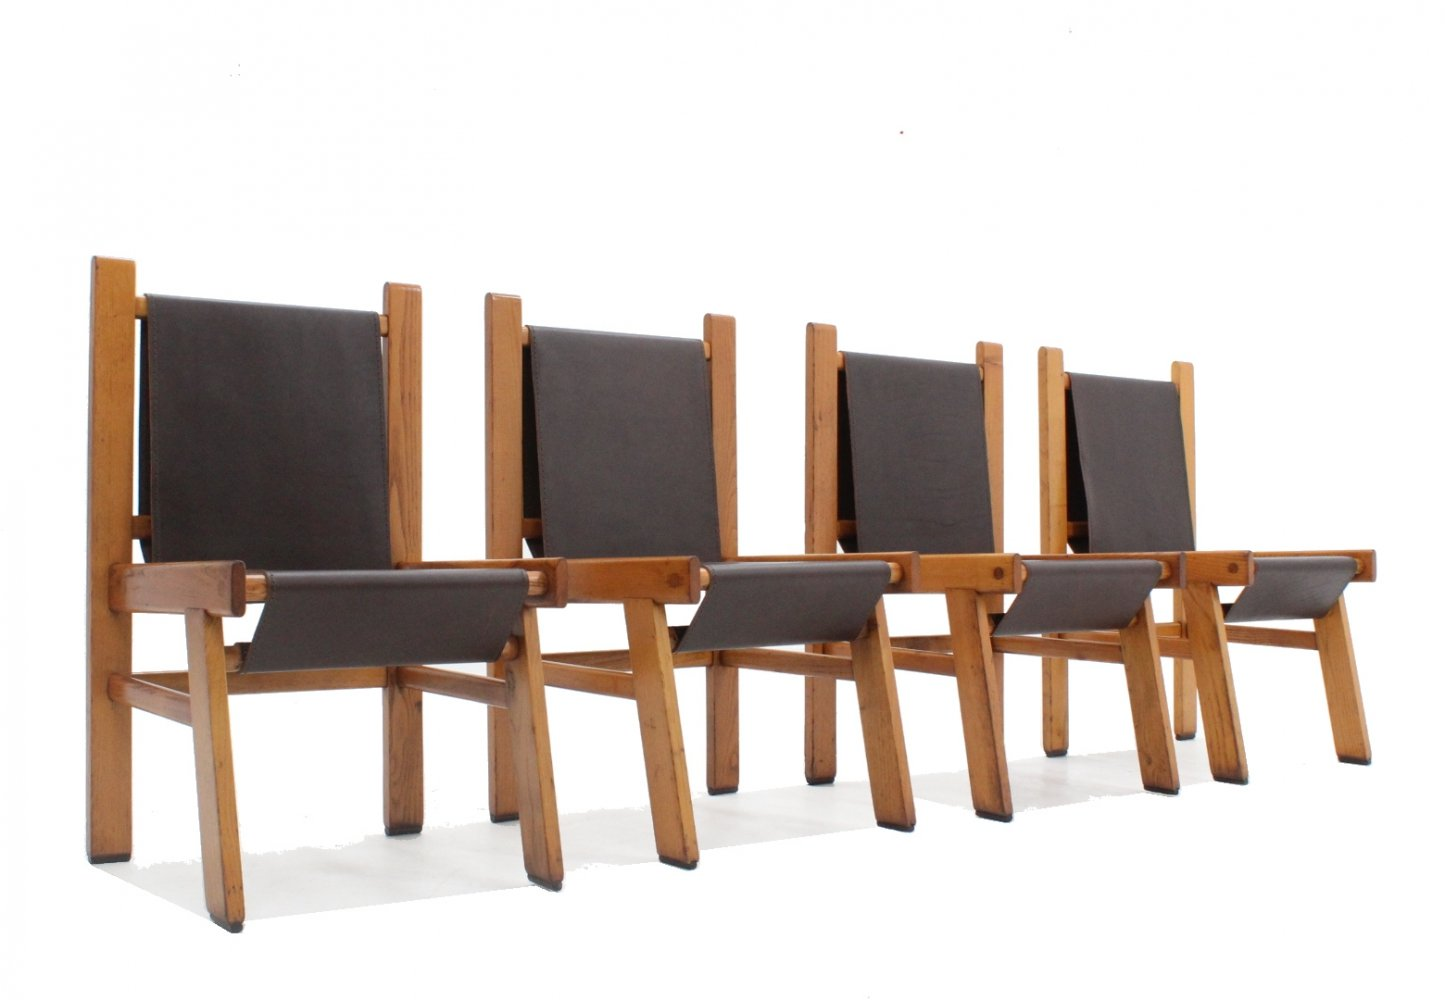 Set of 4 vintage leather dining chairs, 1970s